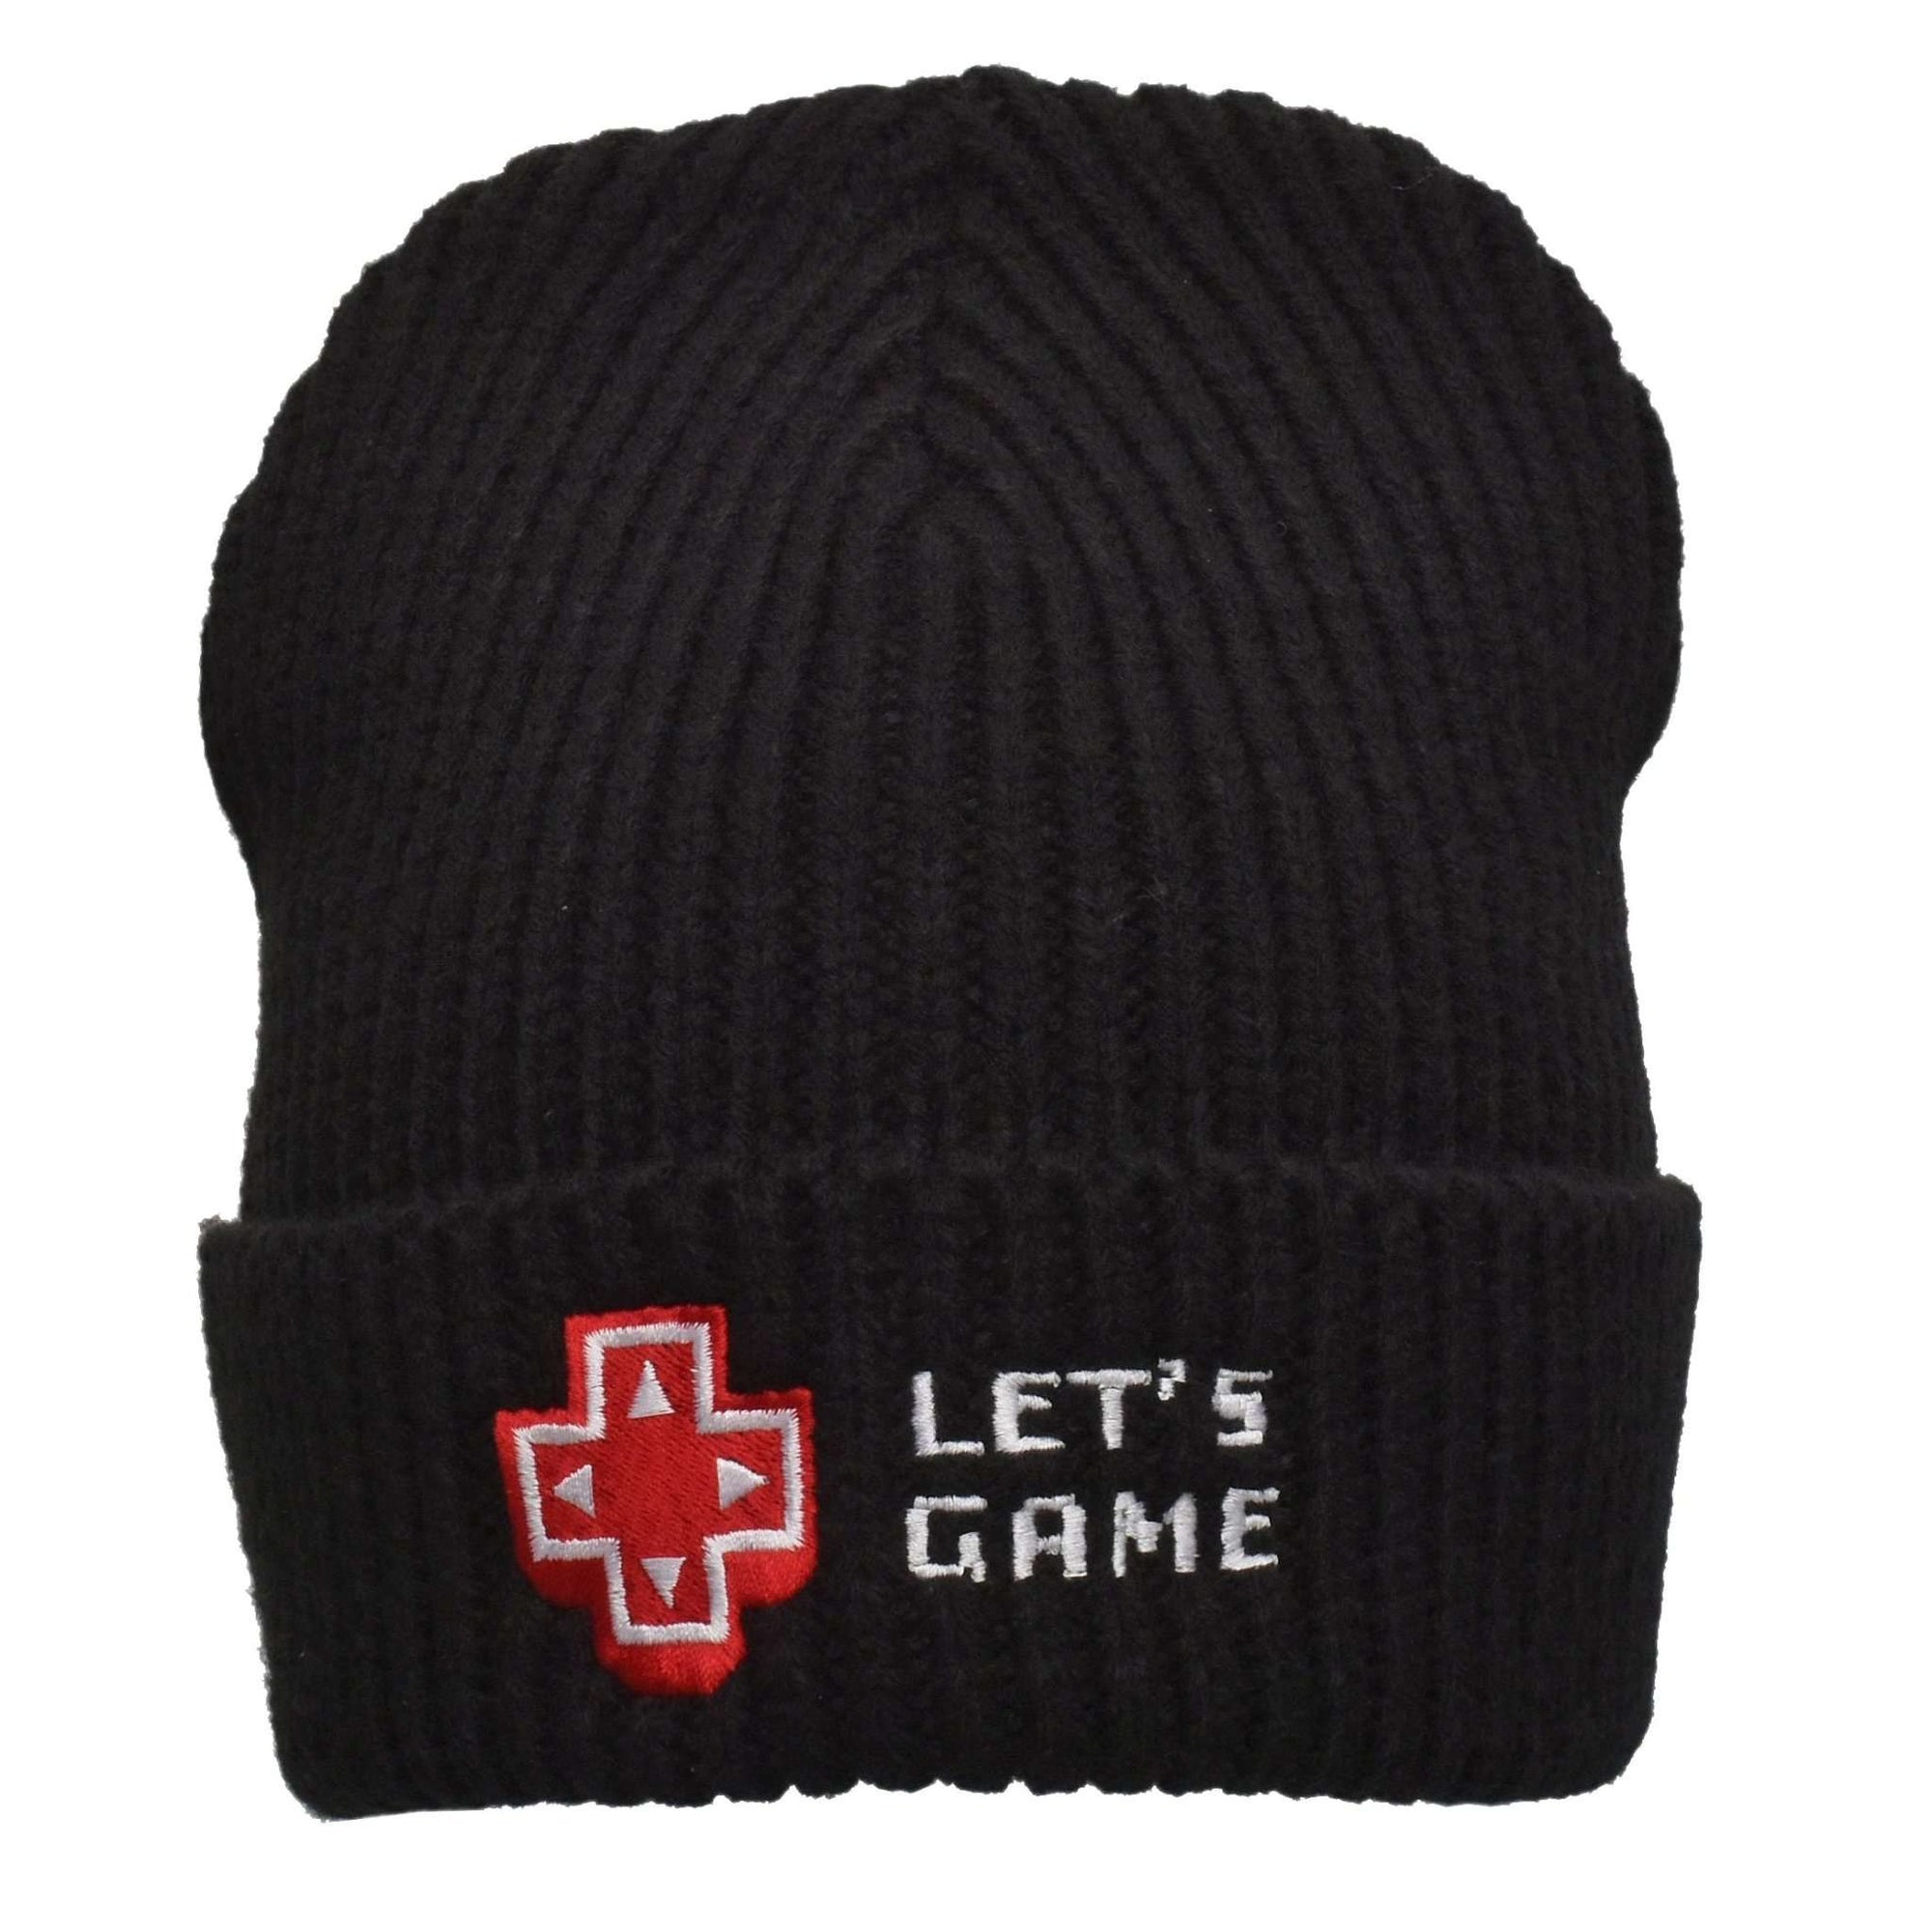 EVORETRO Let's Game Beanie - EvoRetro Lets Game